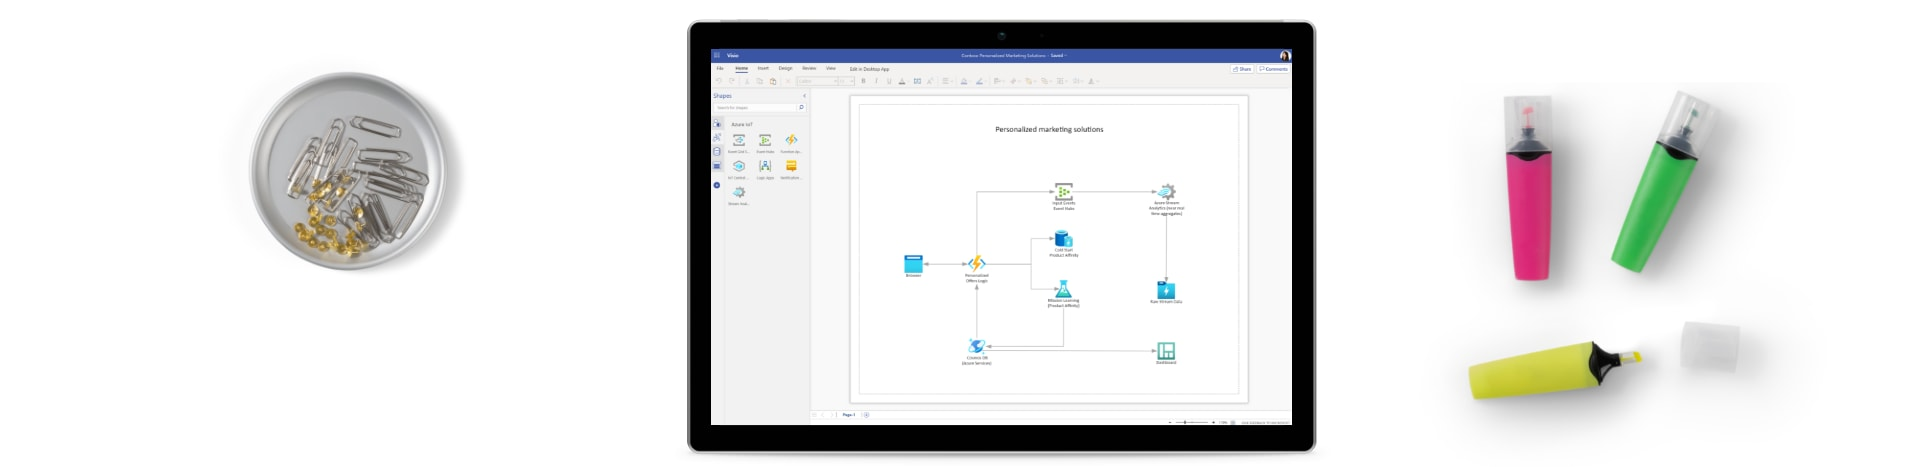 A few highlighters, paperclips and a tablet device showing network diagrams in Microsoft Azure.